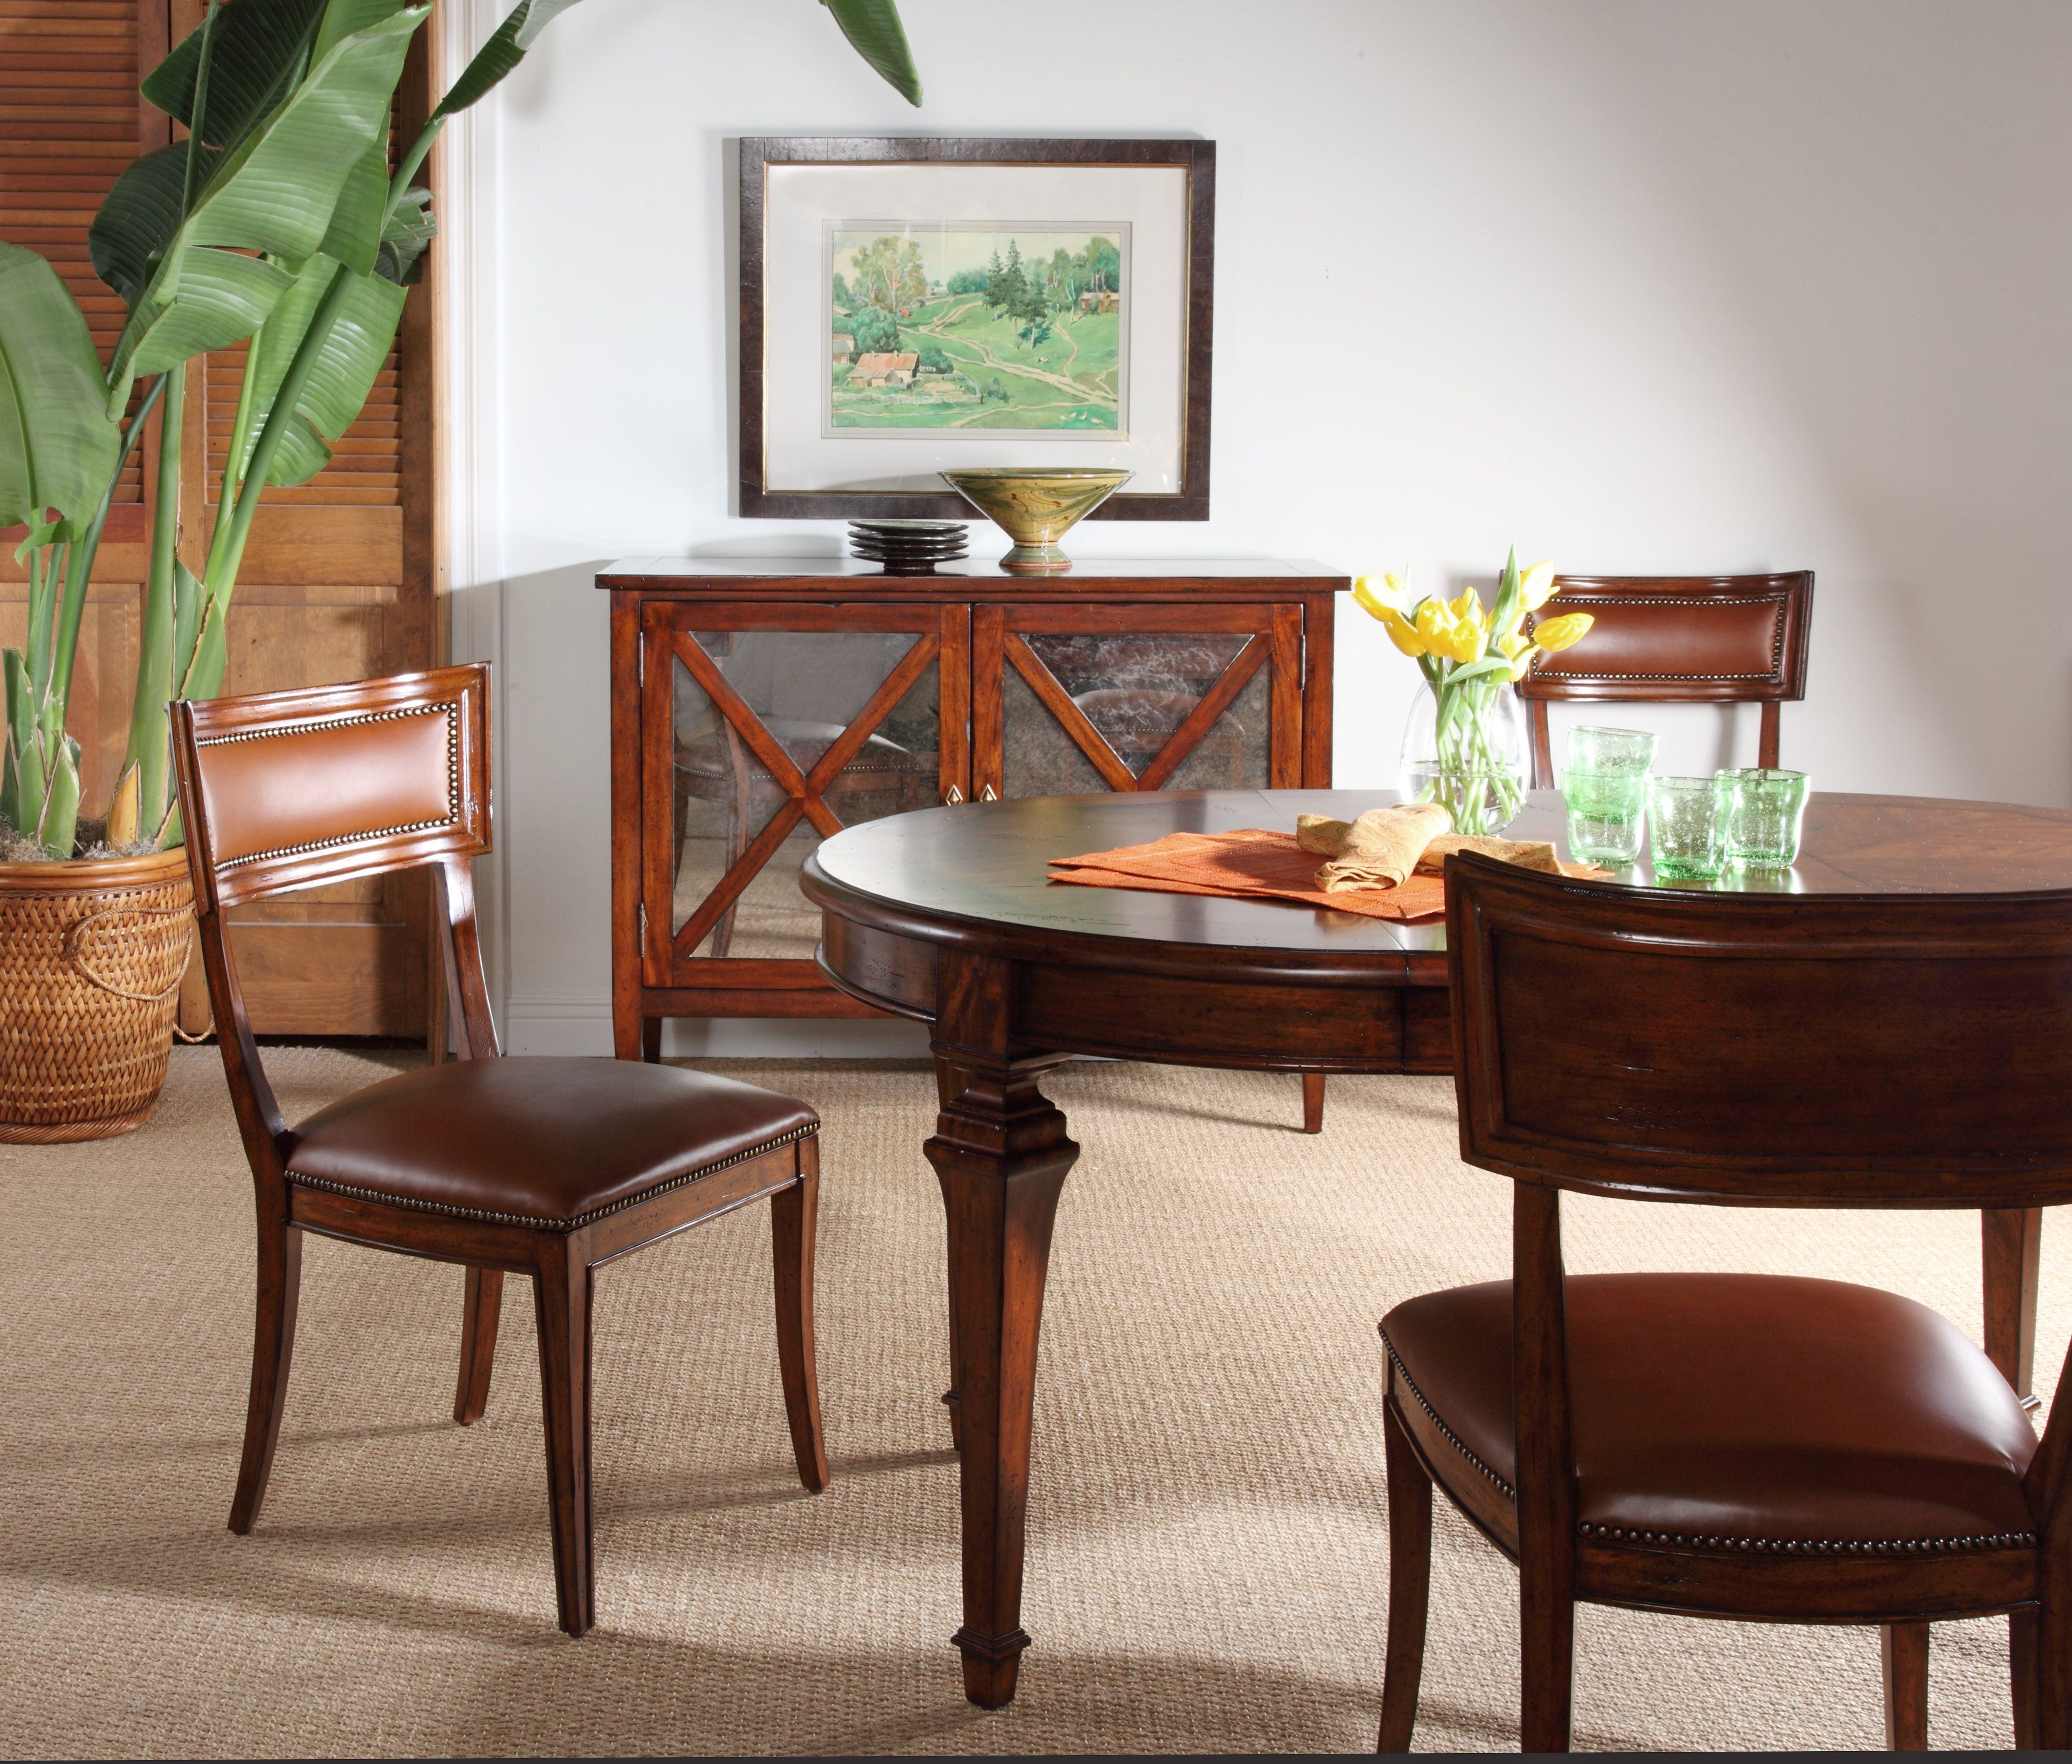 Aperitif Dining Set By Artistica Home Collection Furnishings